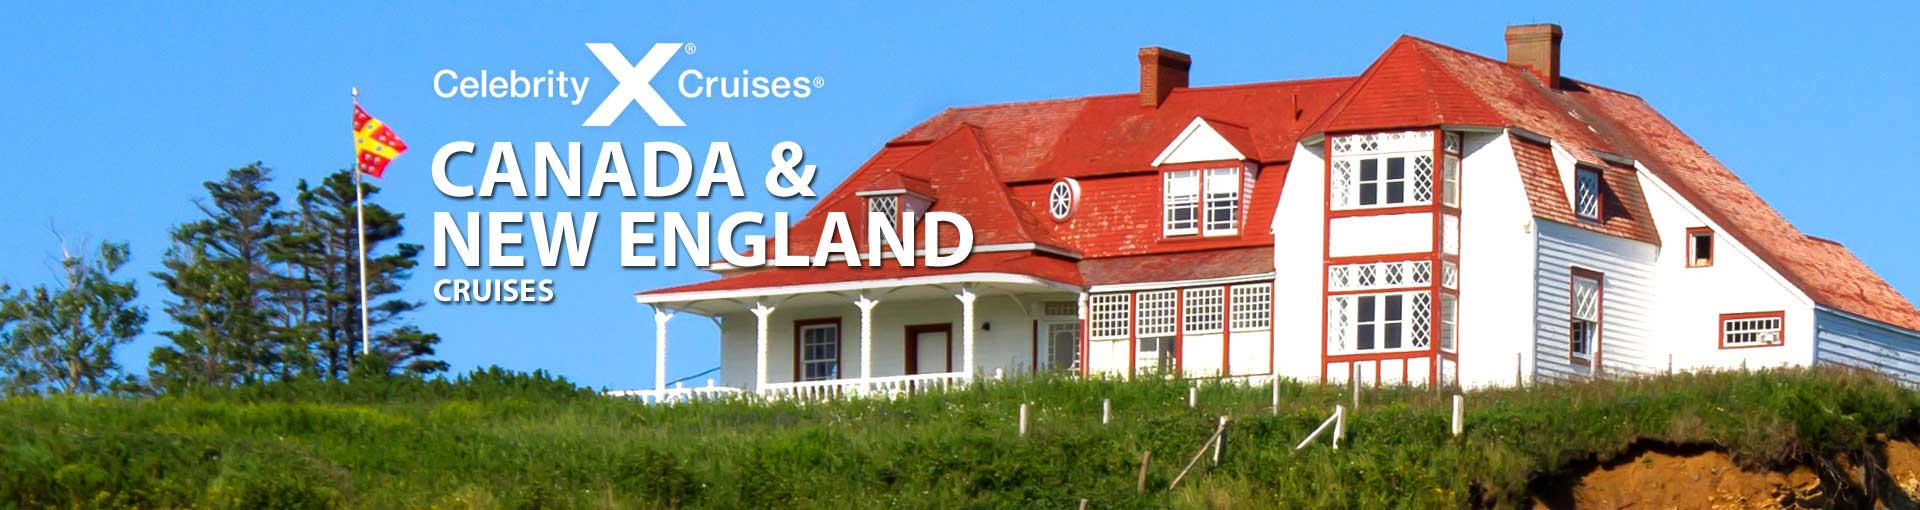 Celebrity Cruises Canada and New England Cruises